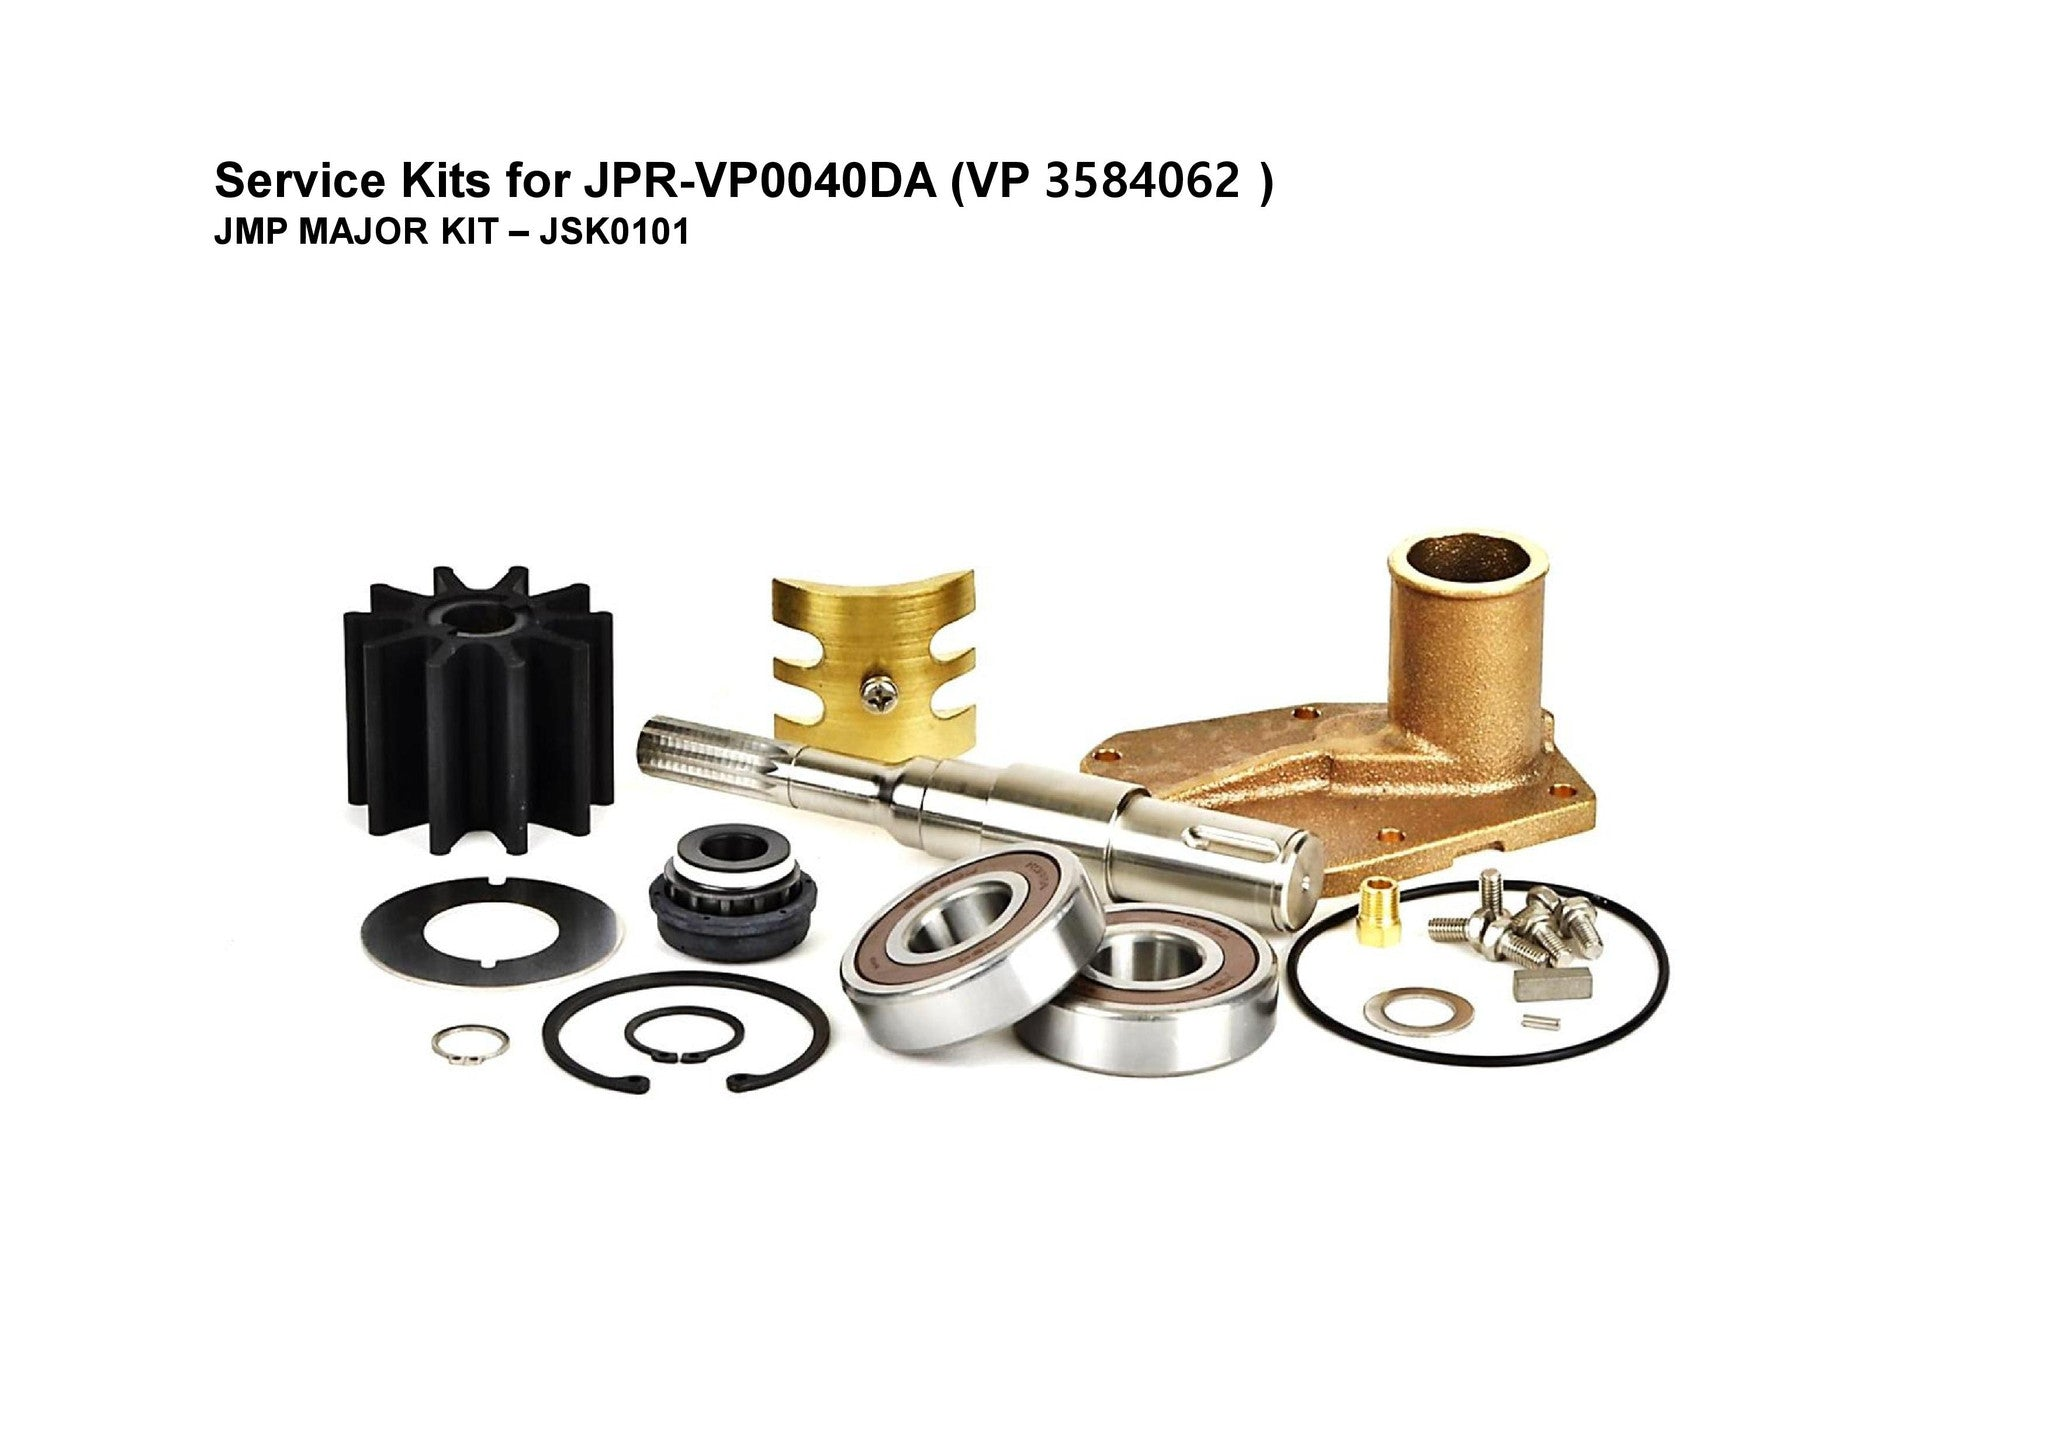 JMP-JSK0101 MAJOR KIT FOR JMP PUMP JPR-VP0040DA-3584062 (Fits Volvo Penta Engines: D4)